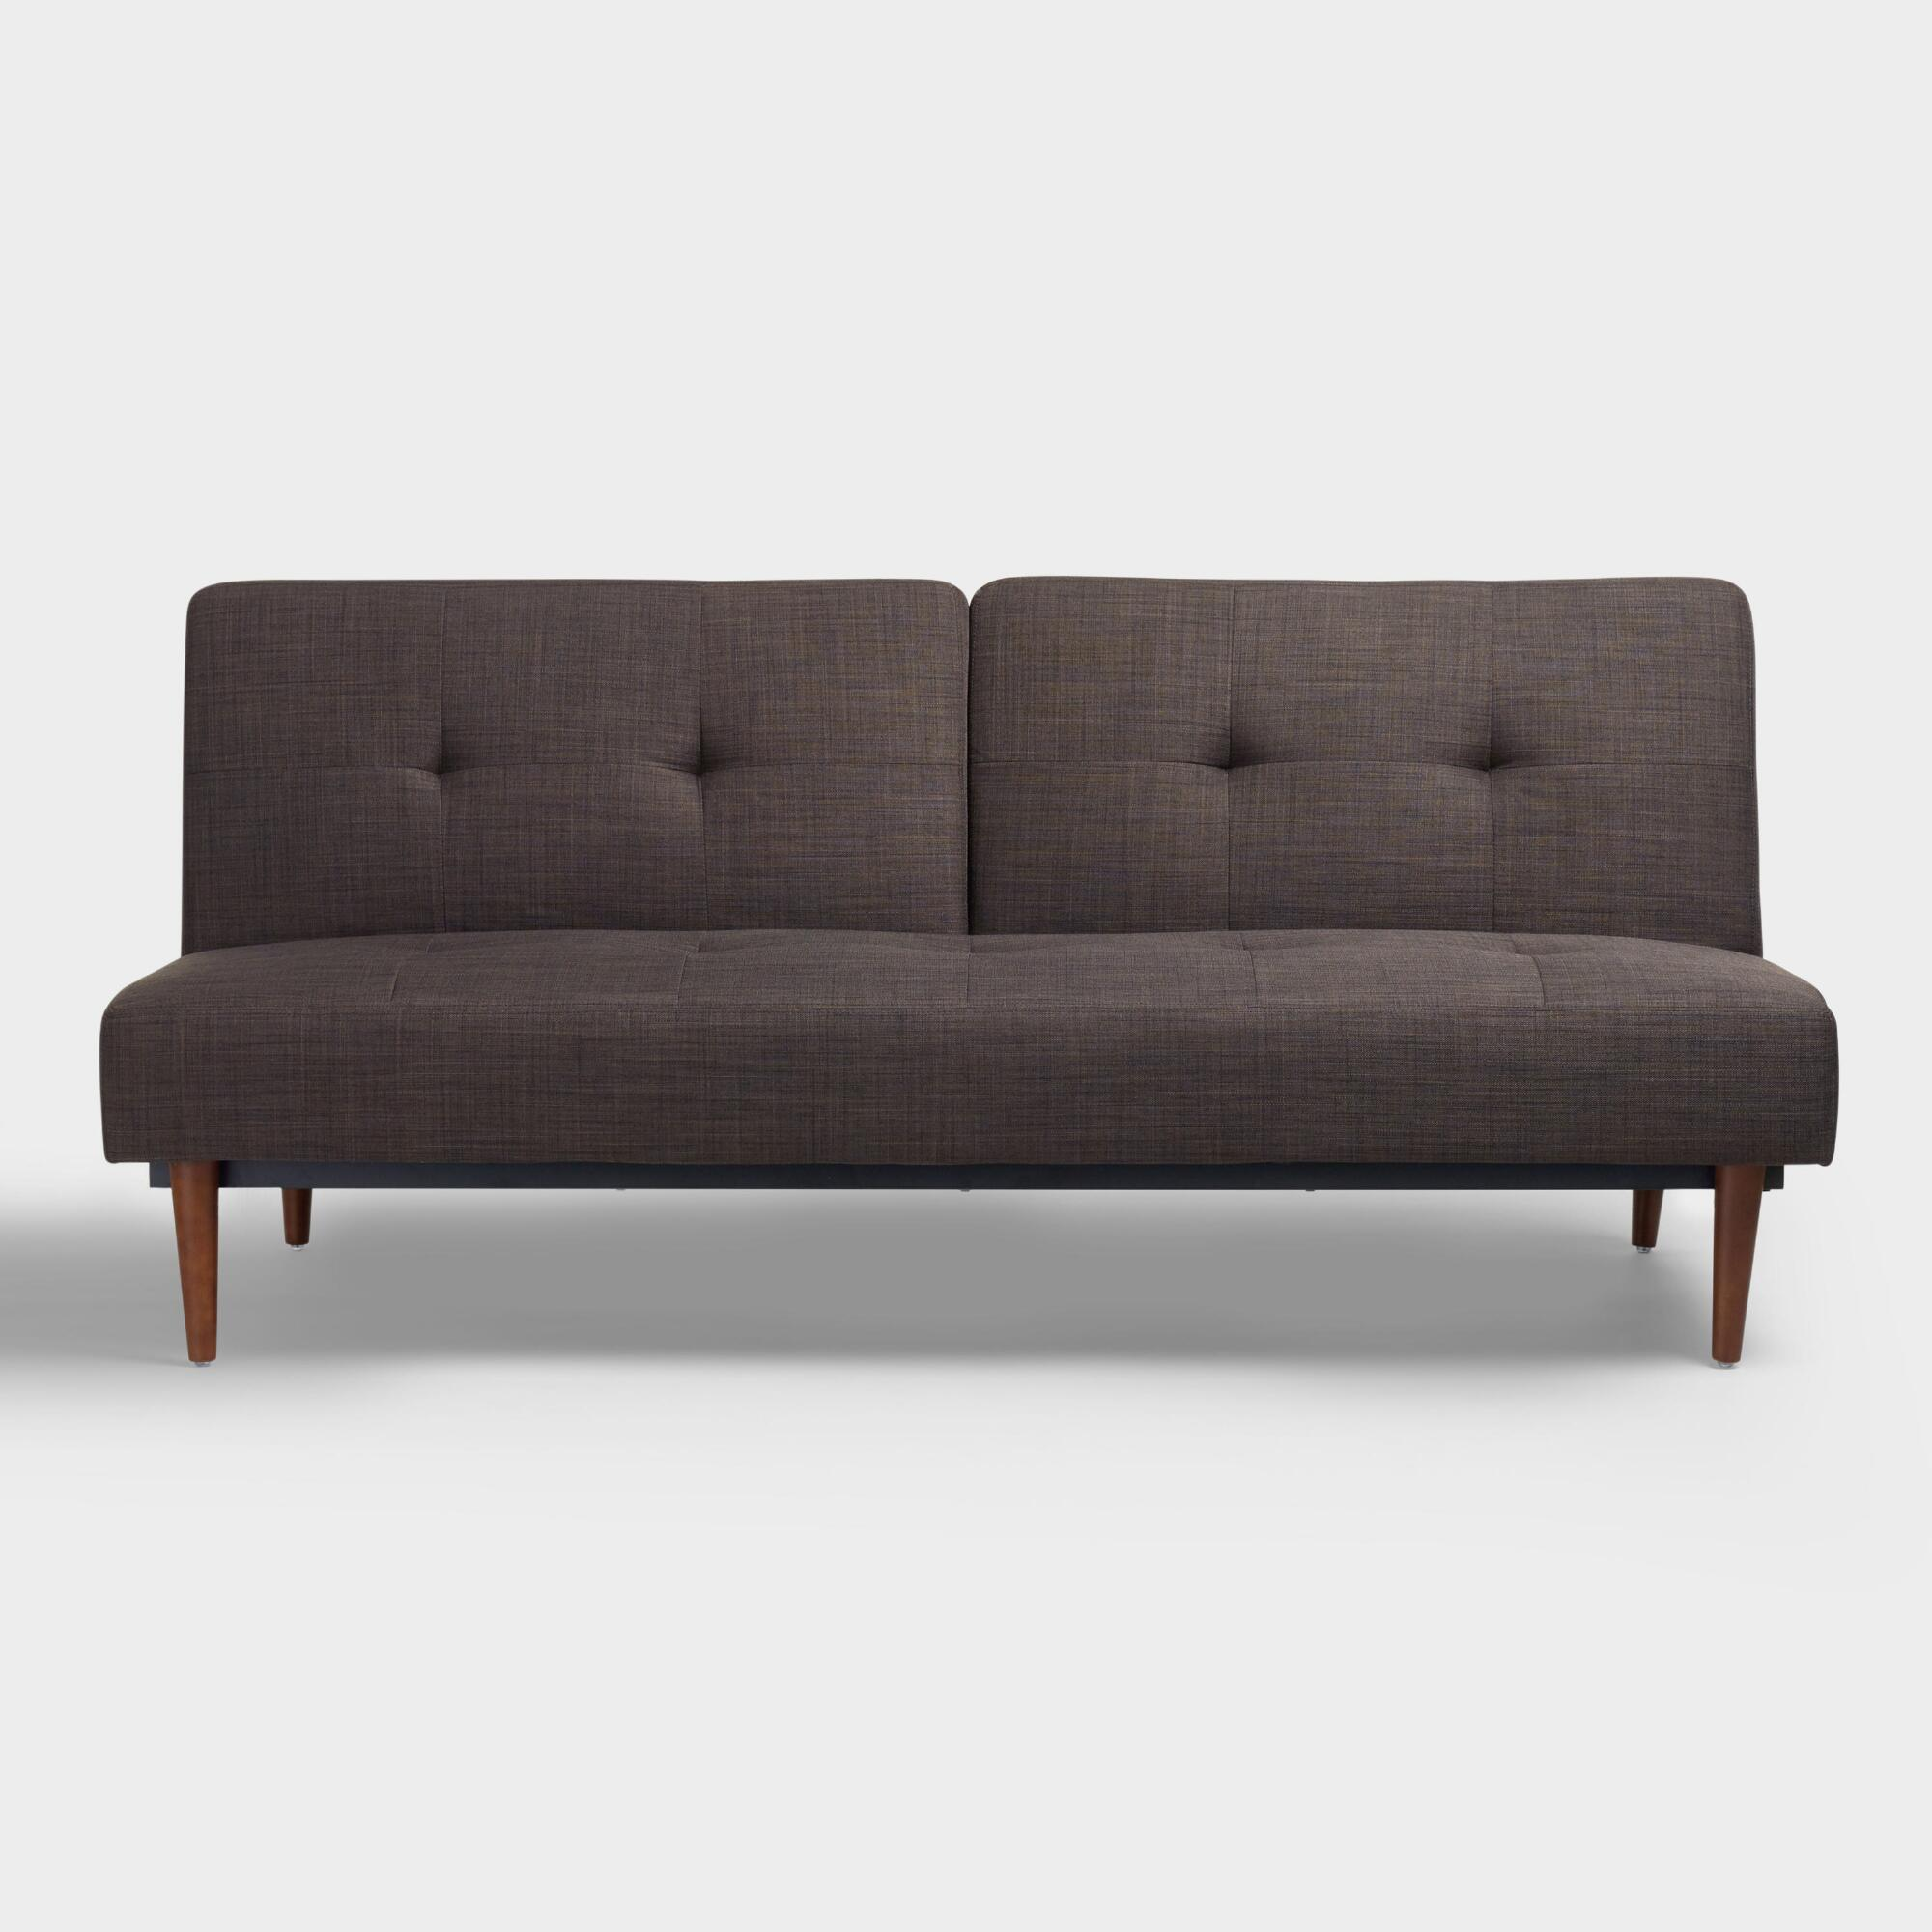 World market sofa bed for Divan convertible